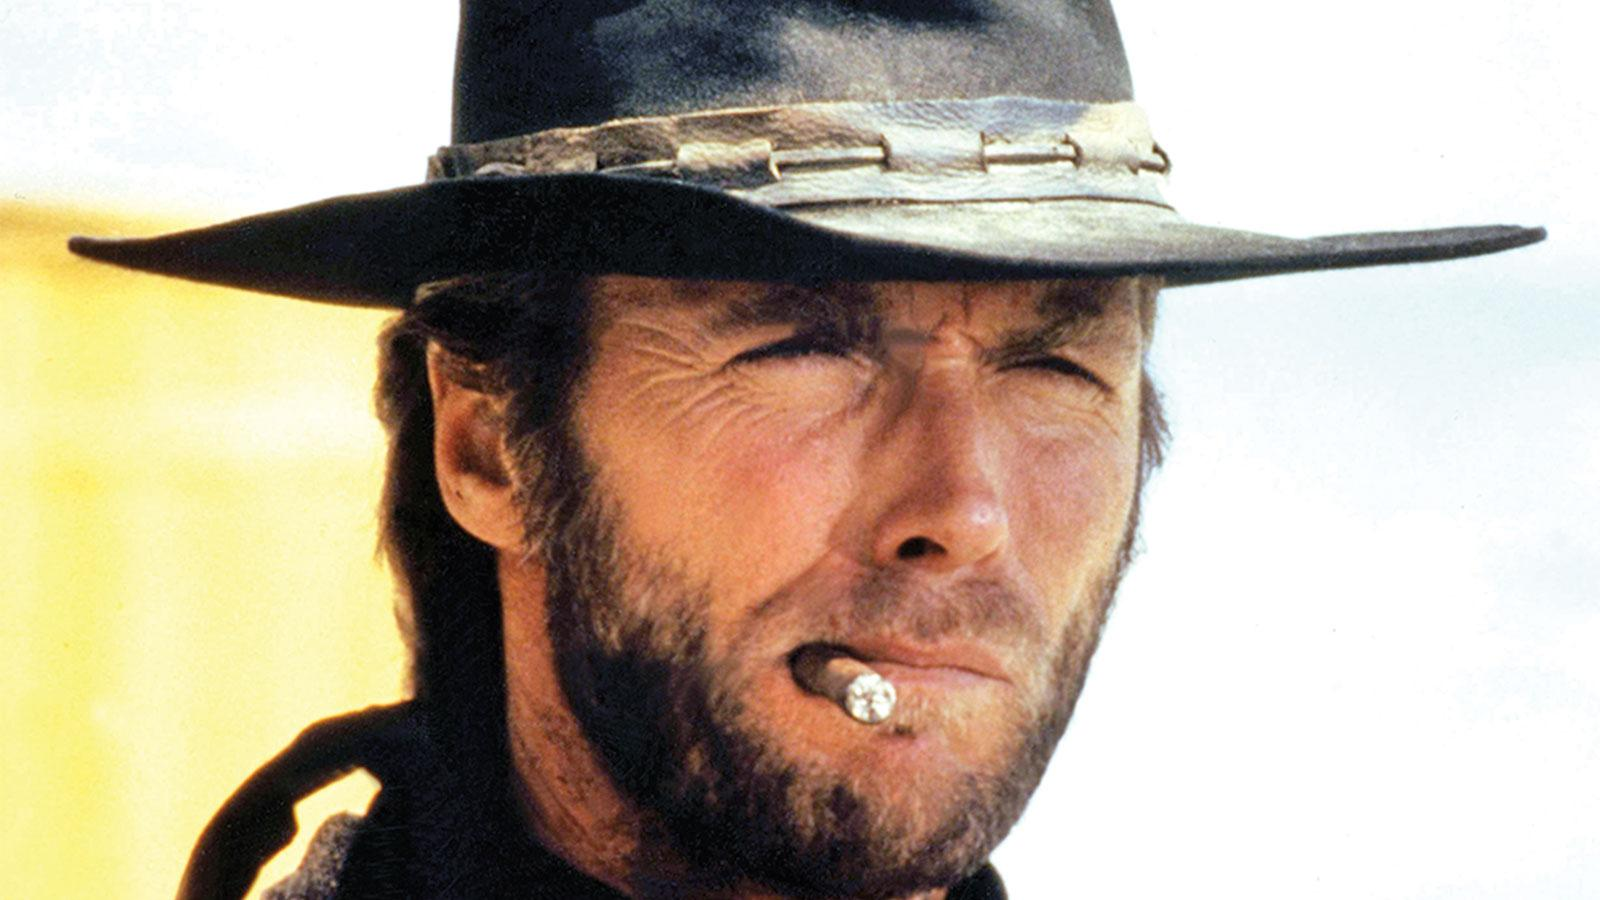 Clint Eastwood in High Plains Drifter.